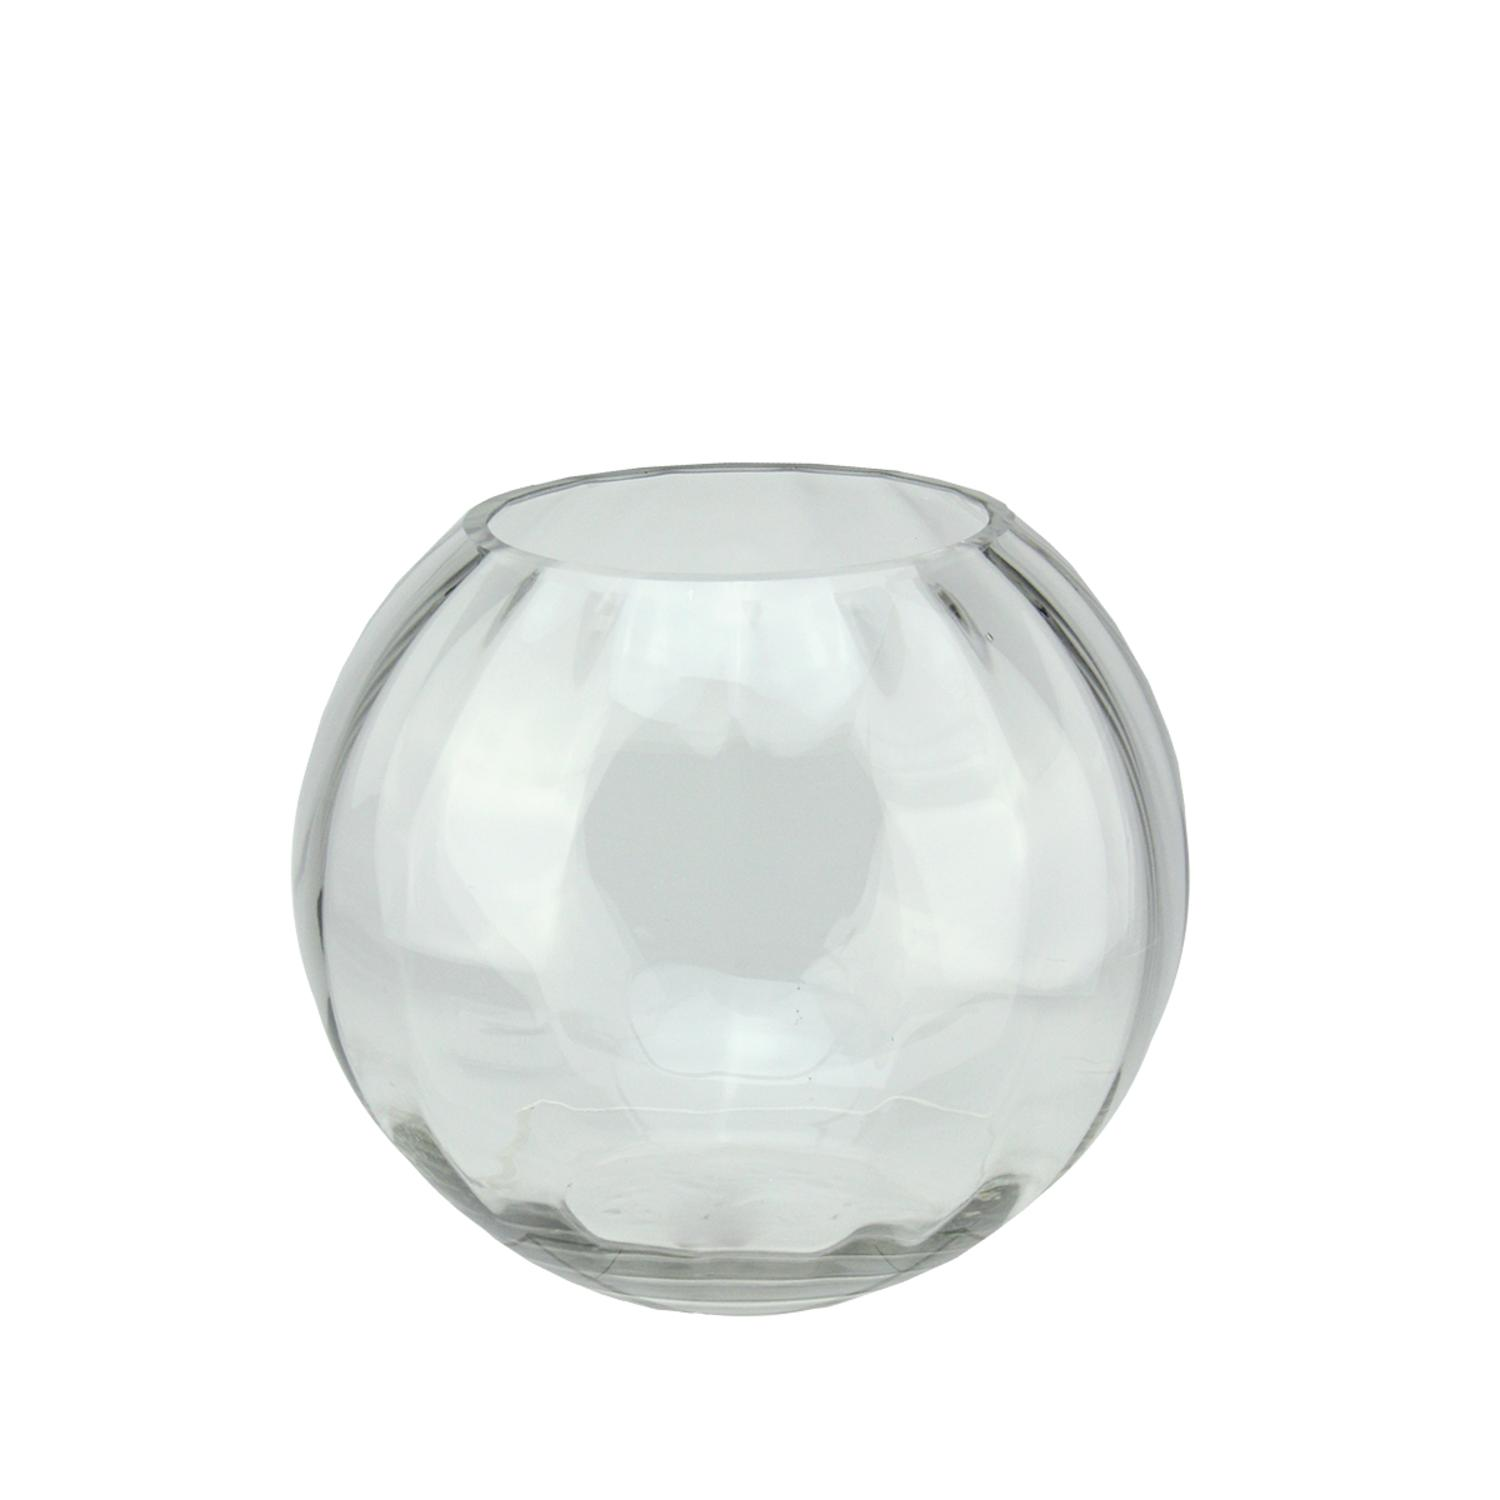 "8.75"" Round Segmented Transparent Glass Decorative Bowl by Northlight"